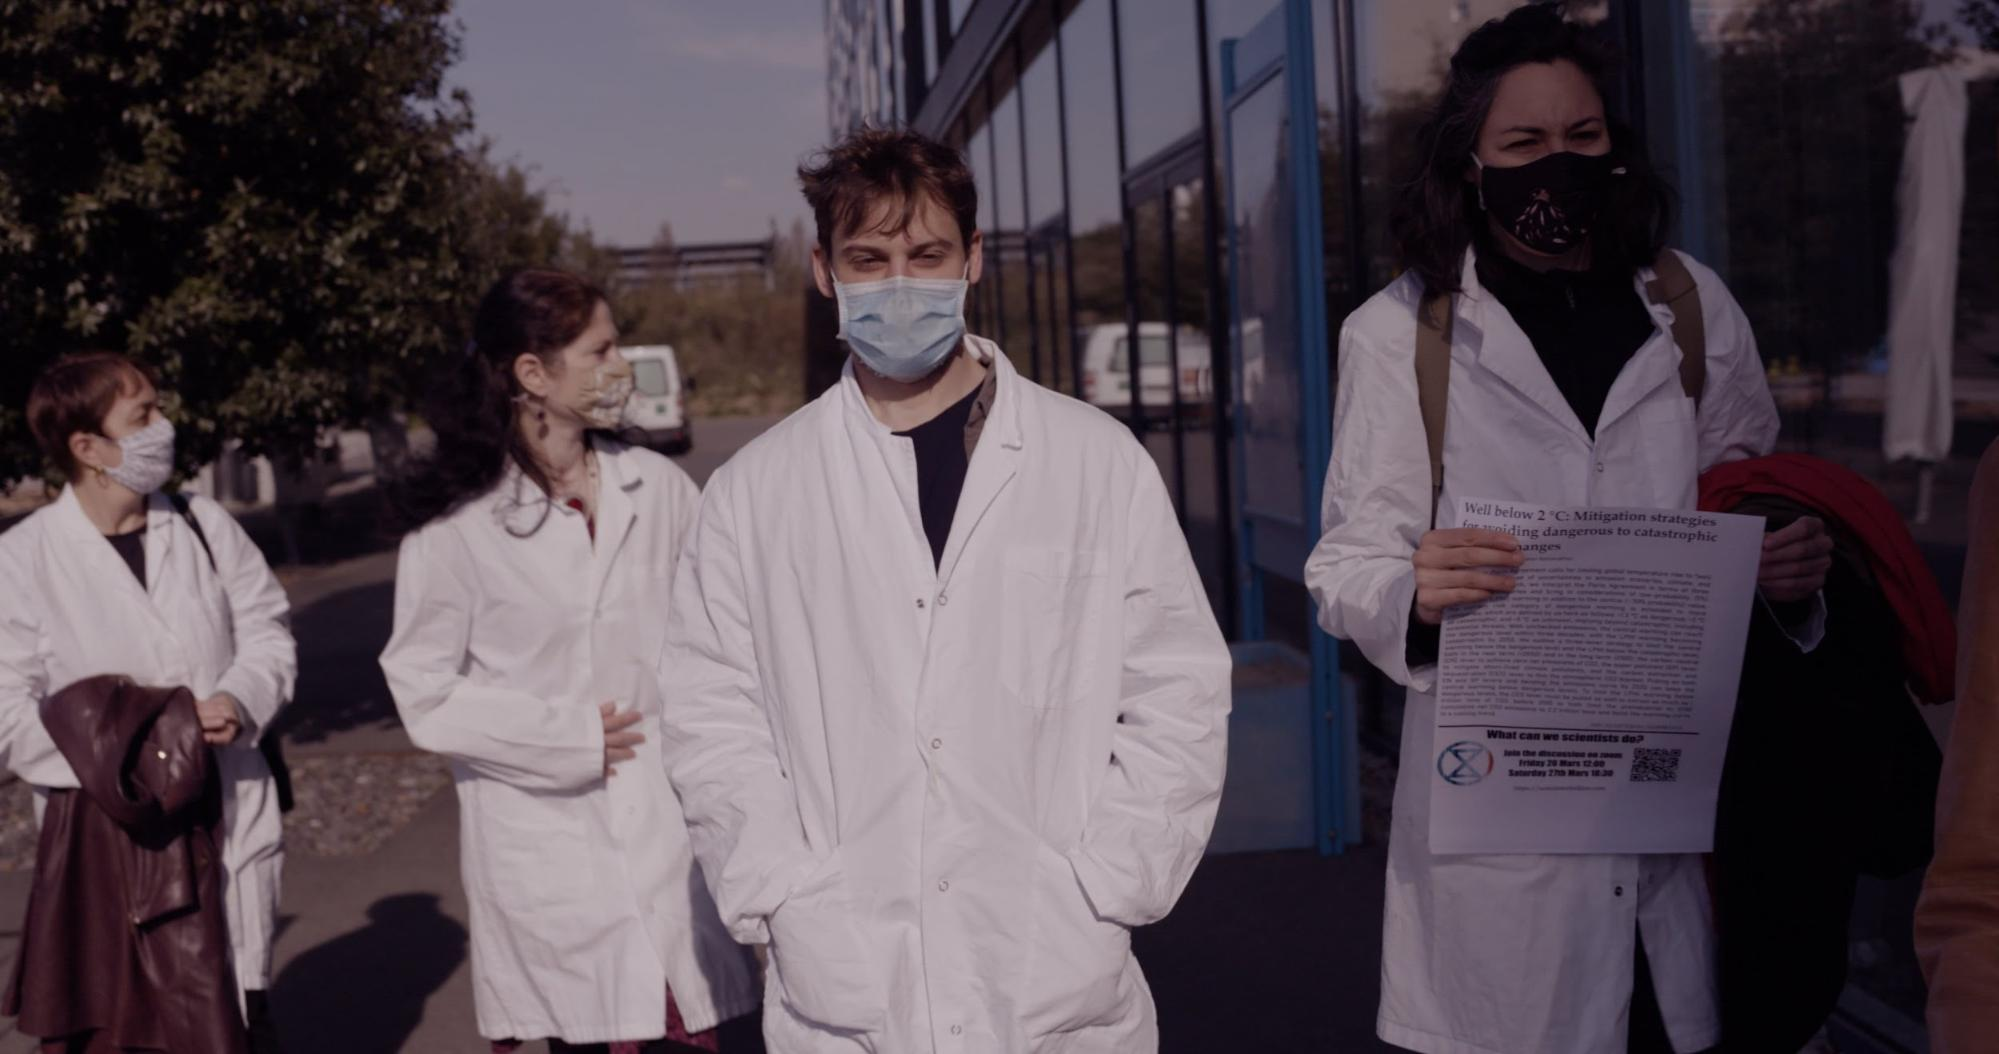 Scientists in Lausanne, Switzerland prepare for direct action.